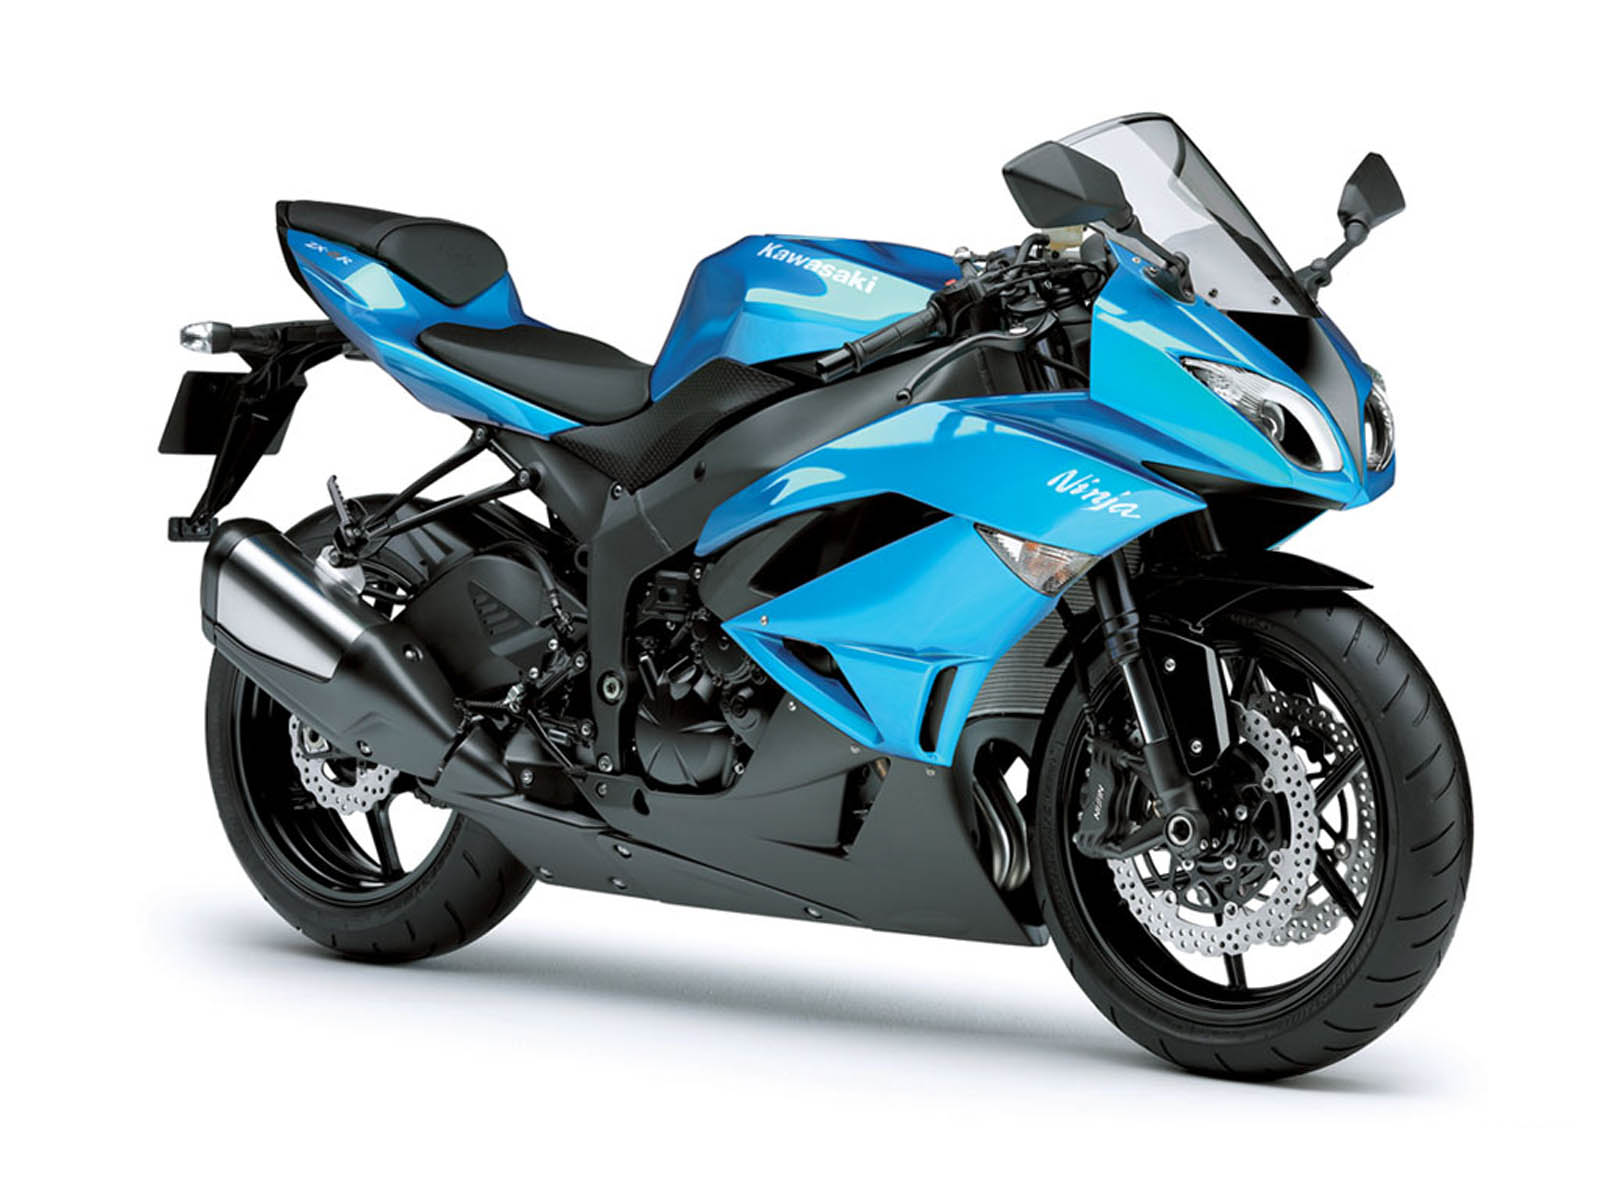 wallpapers kawasaki ninja zx 6r bike. Black Bedroom Furniture Sets. Home Design Ideas